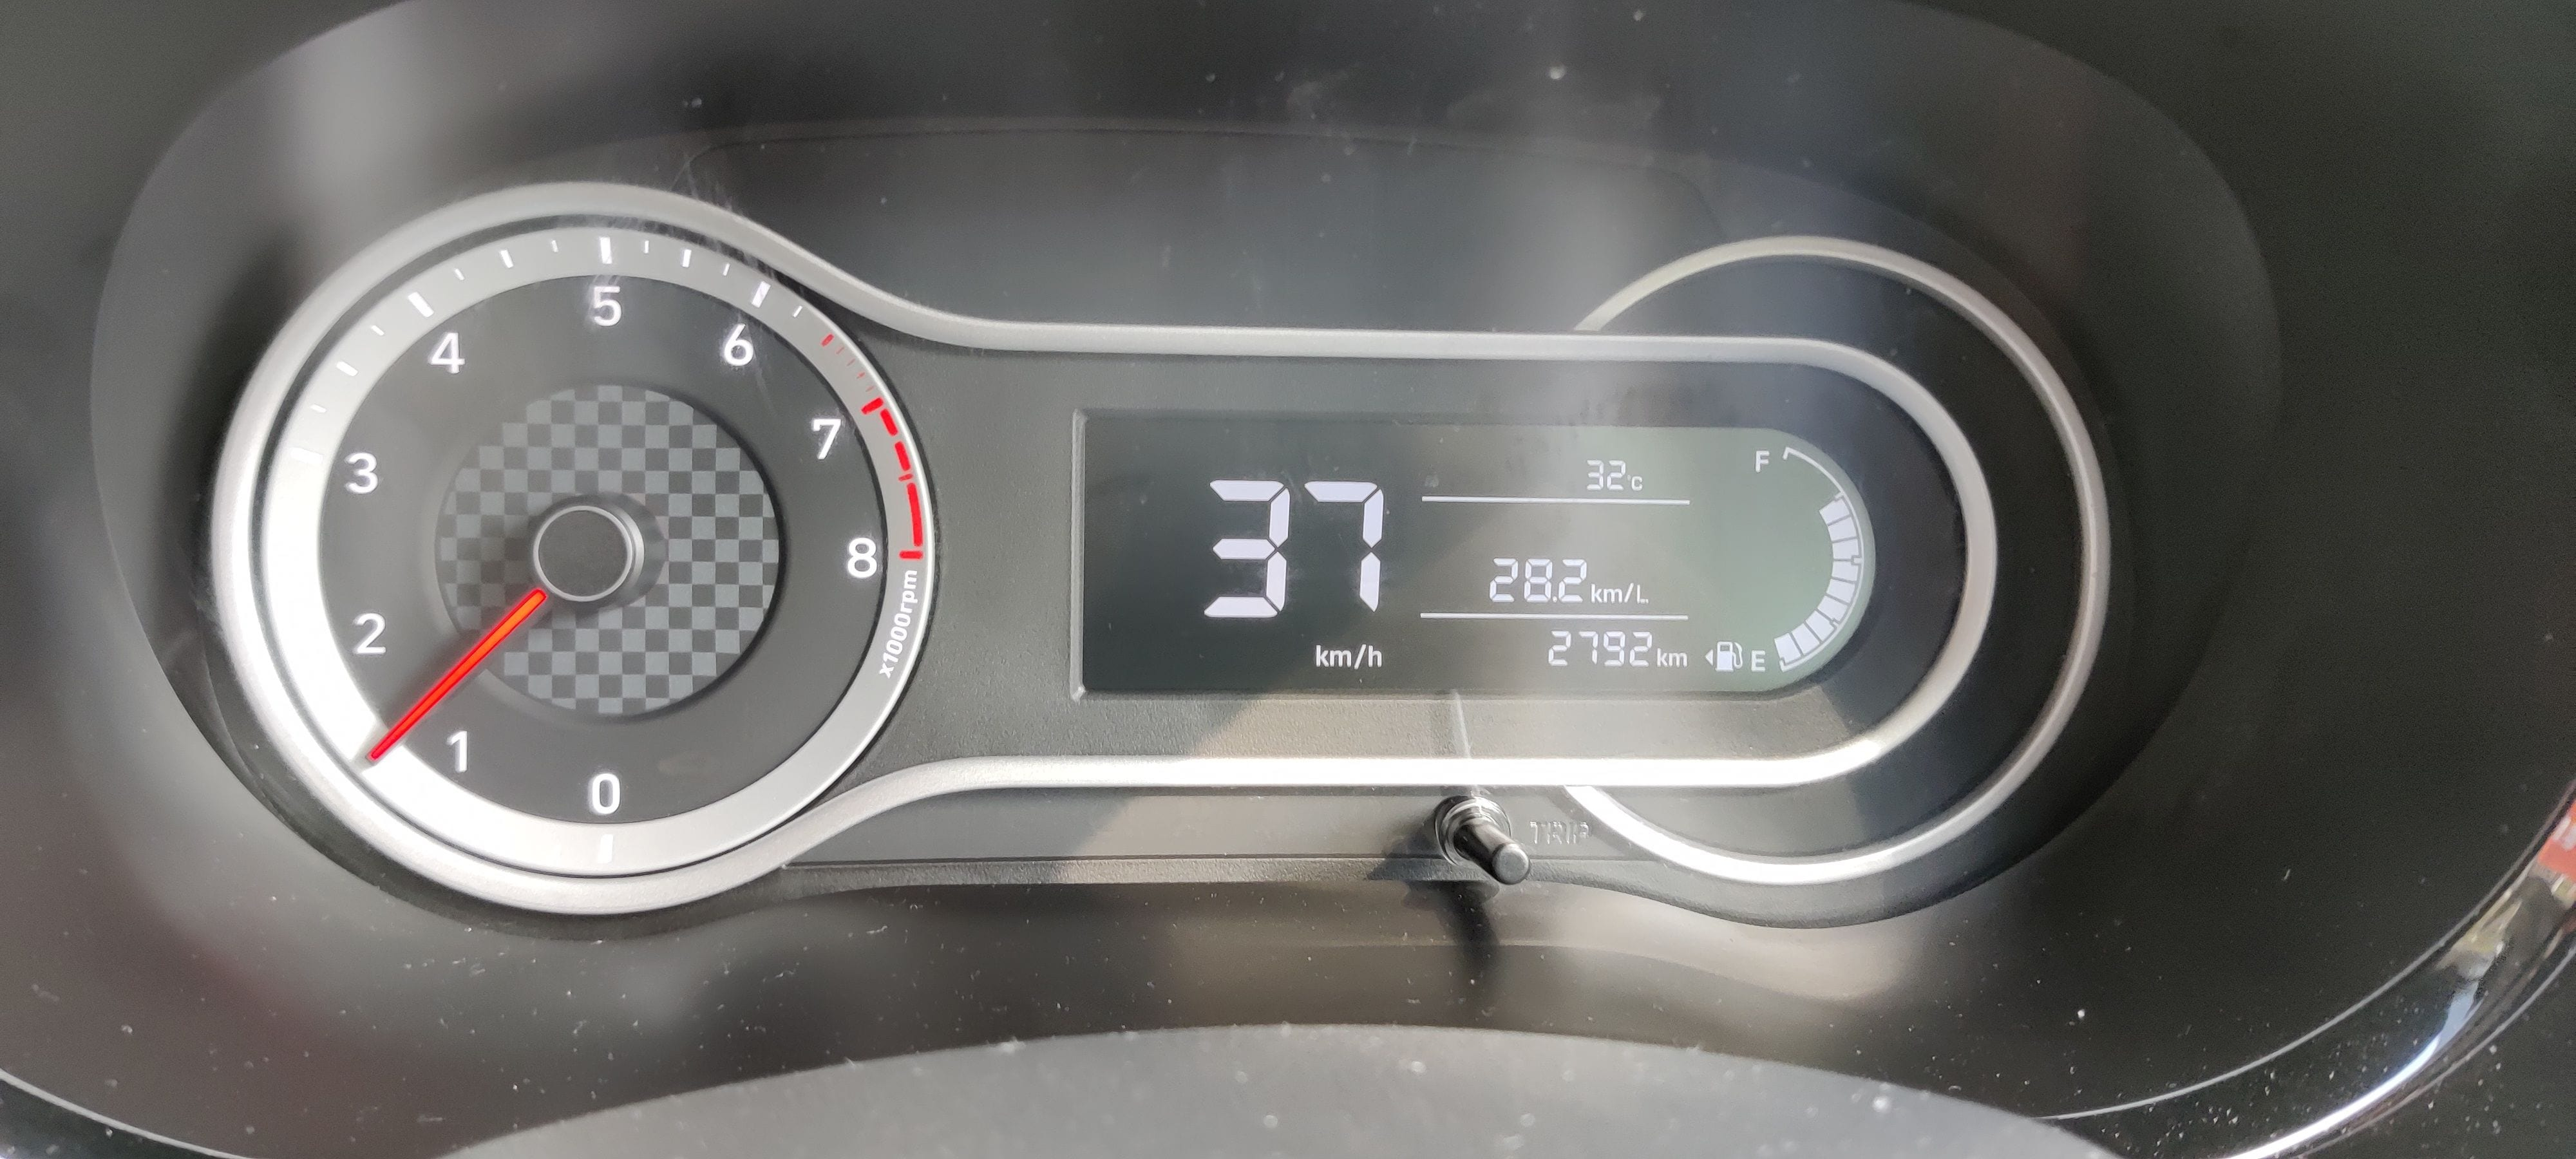 The car gets an eight-inch infotainment screen, a 5.3-inch digital instrument cluster, rear AC vents, rear 12V charging point and USB, headlight height adjuster, among others. (Photo - Sabyasachi Dasgupta)